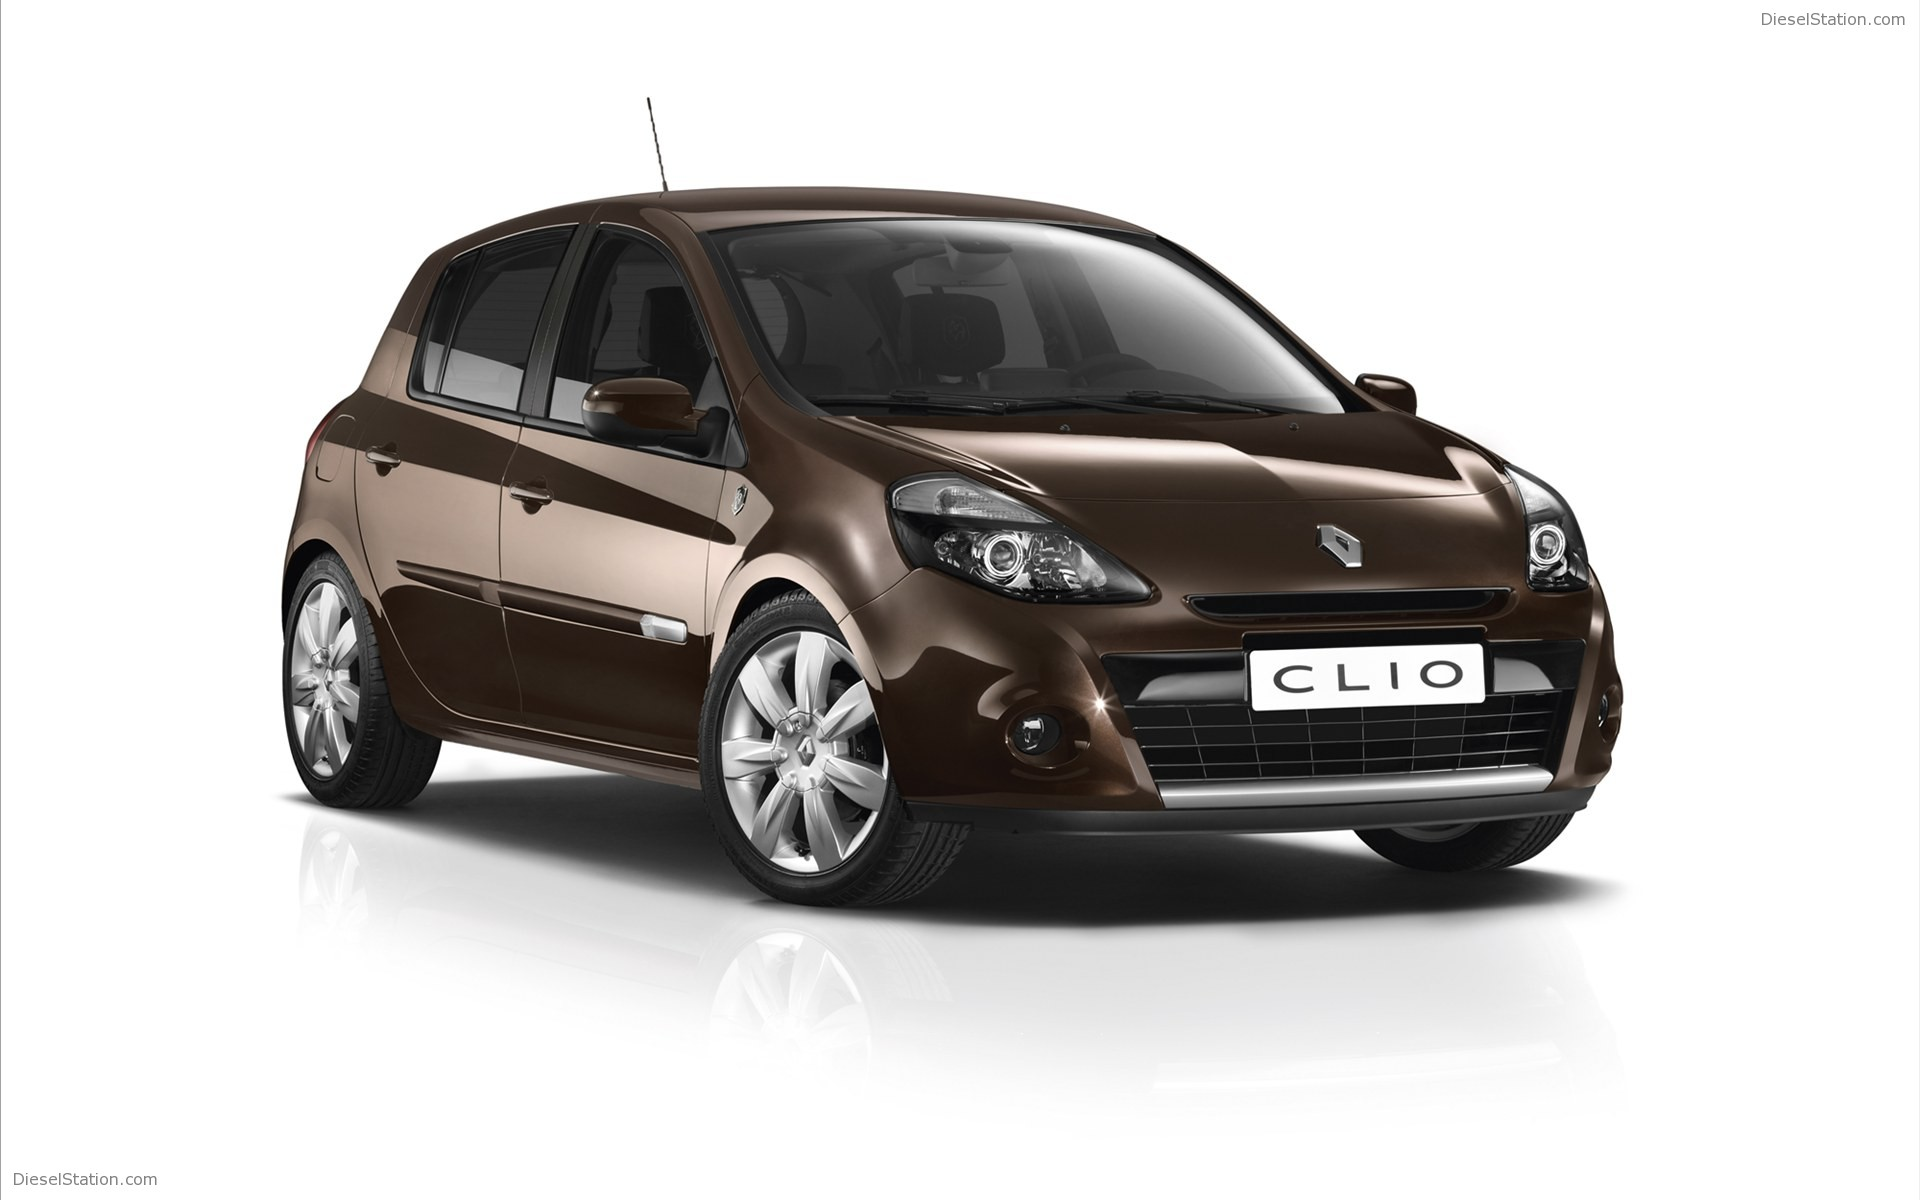 2012 renault clio photos informations articles. Black Bedroom Furniture Sets. Home Design Ideas